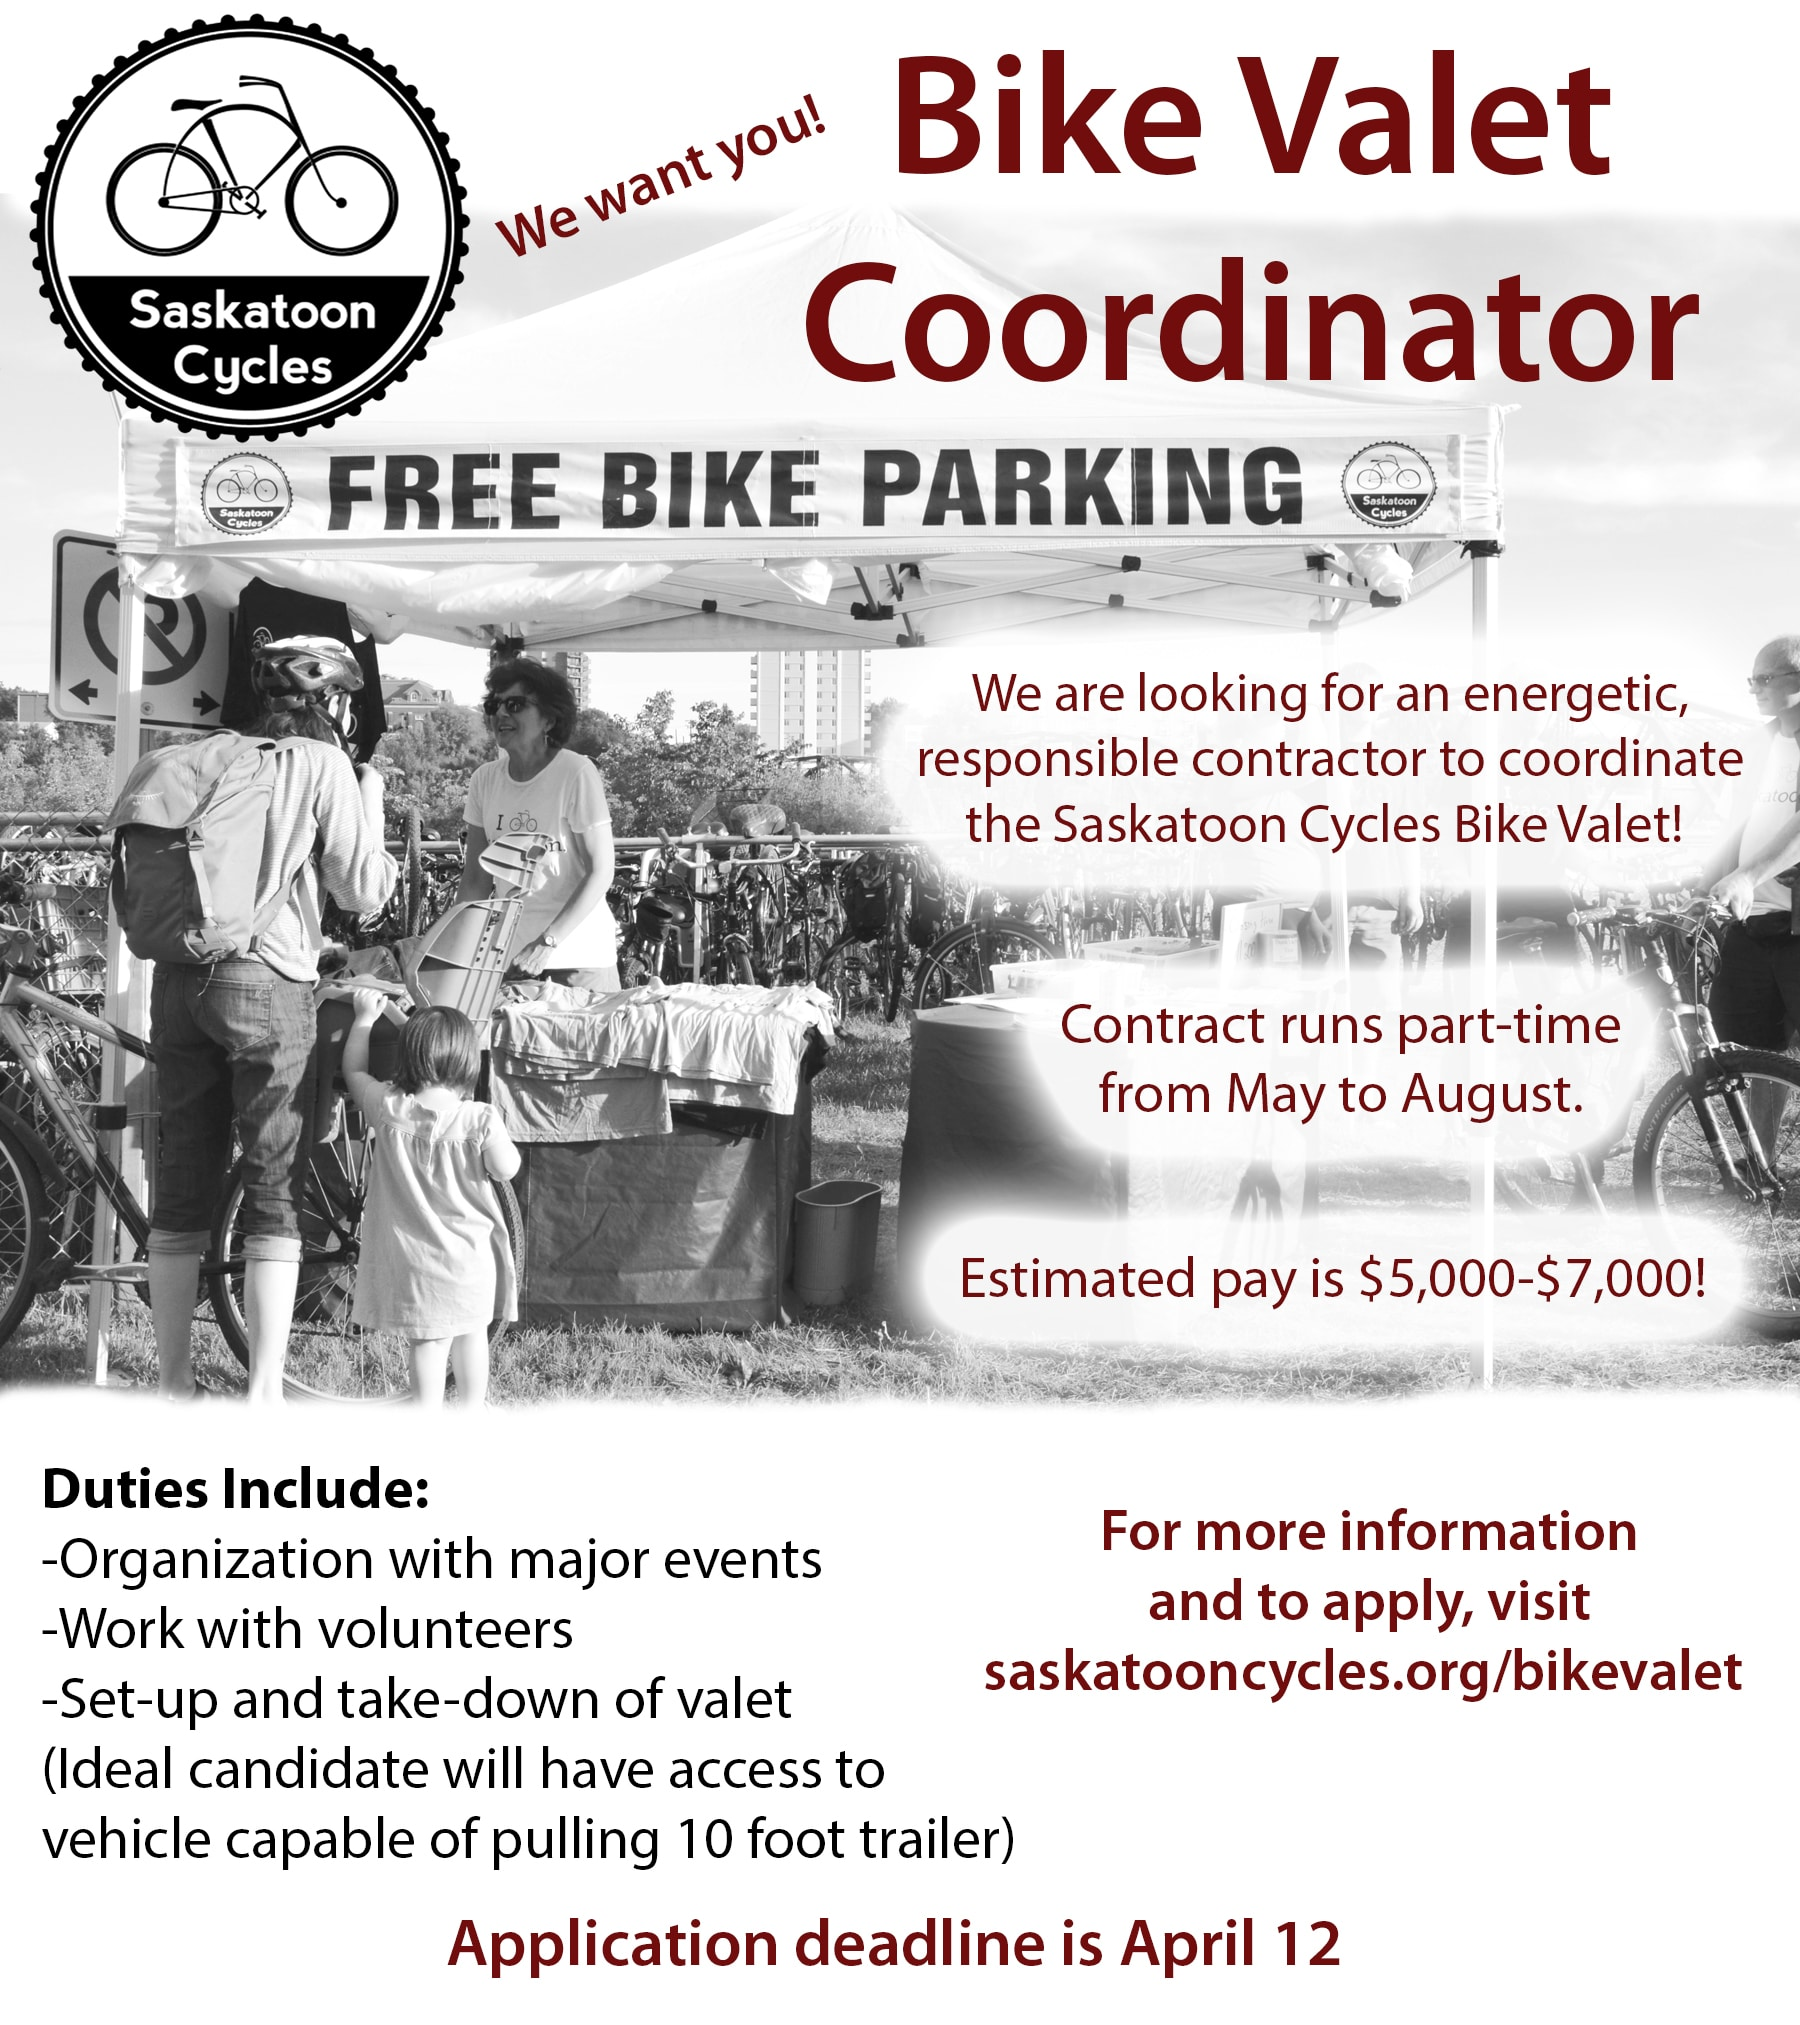 Apply to be the new bike valet coordinator